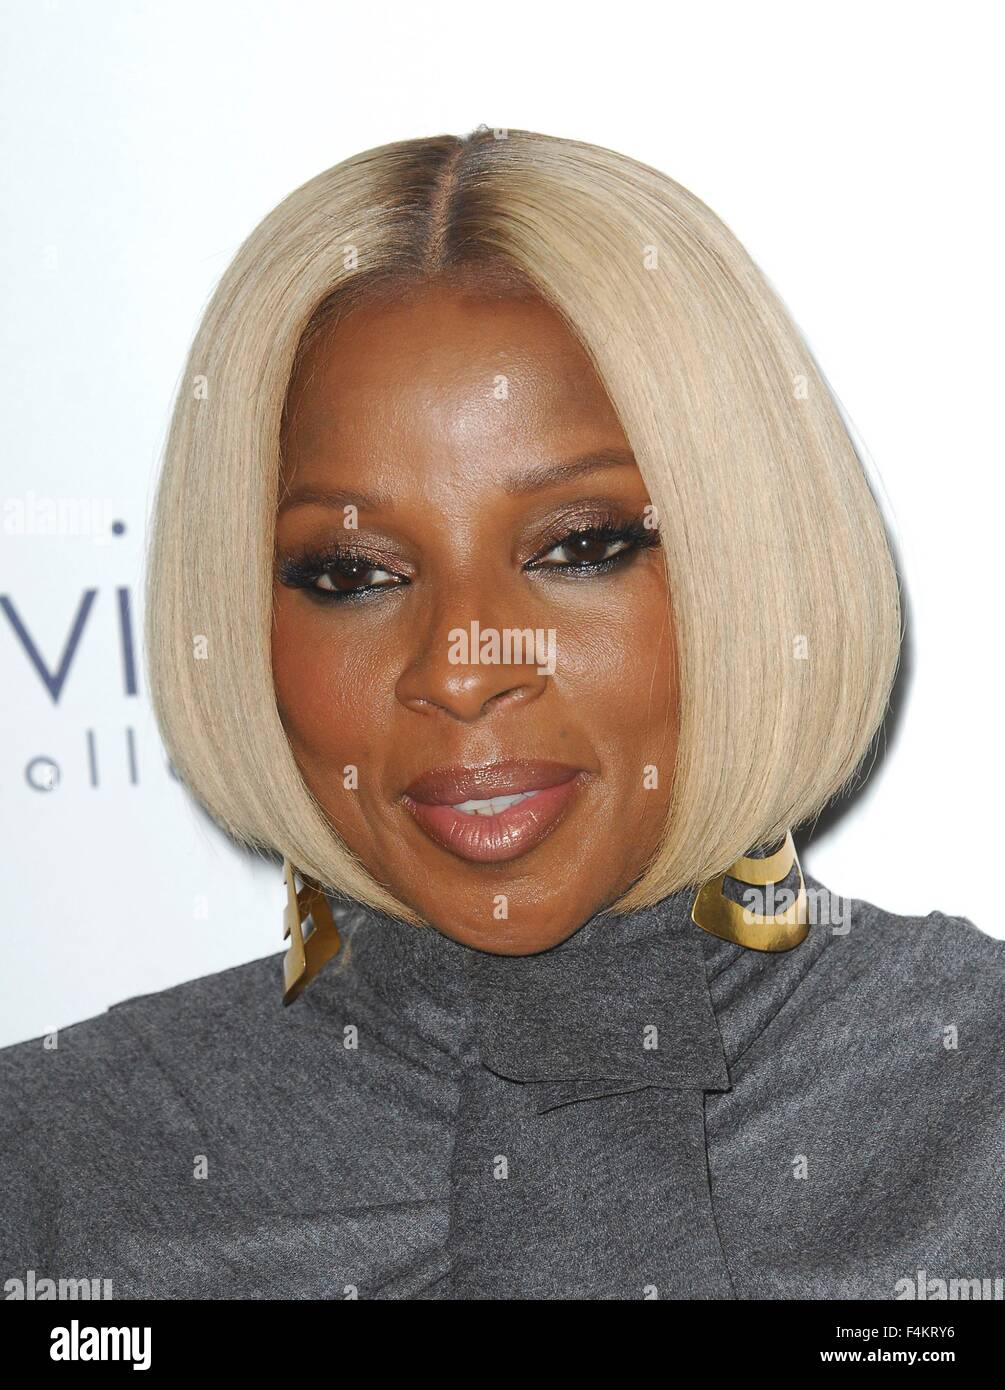 Los Angeles, CA, USA. 19th Oct, 2015. Mary J. Blige at arrivals for 2015 ELLE Women in Hollywood Awards, Four Seasons - Stock Image